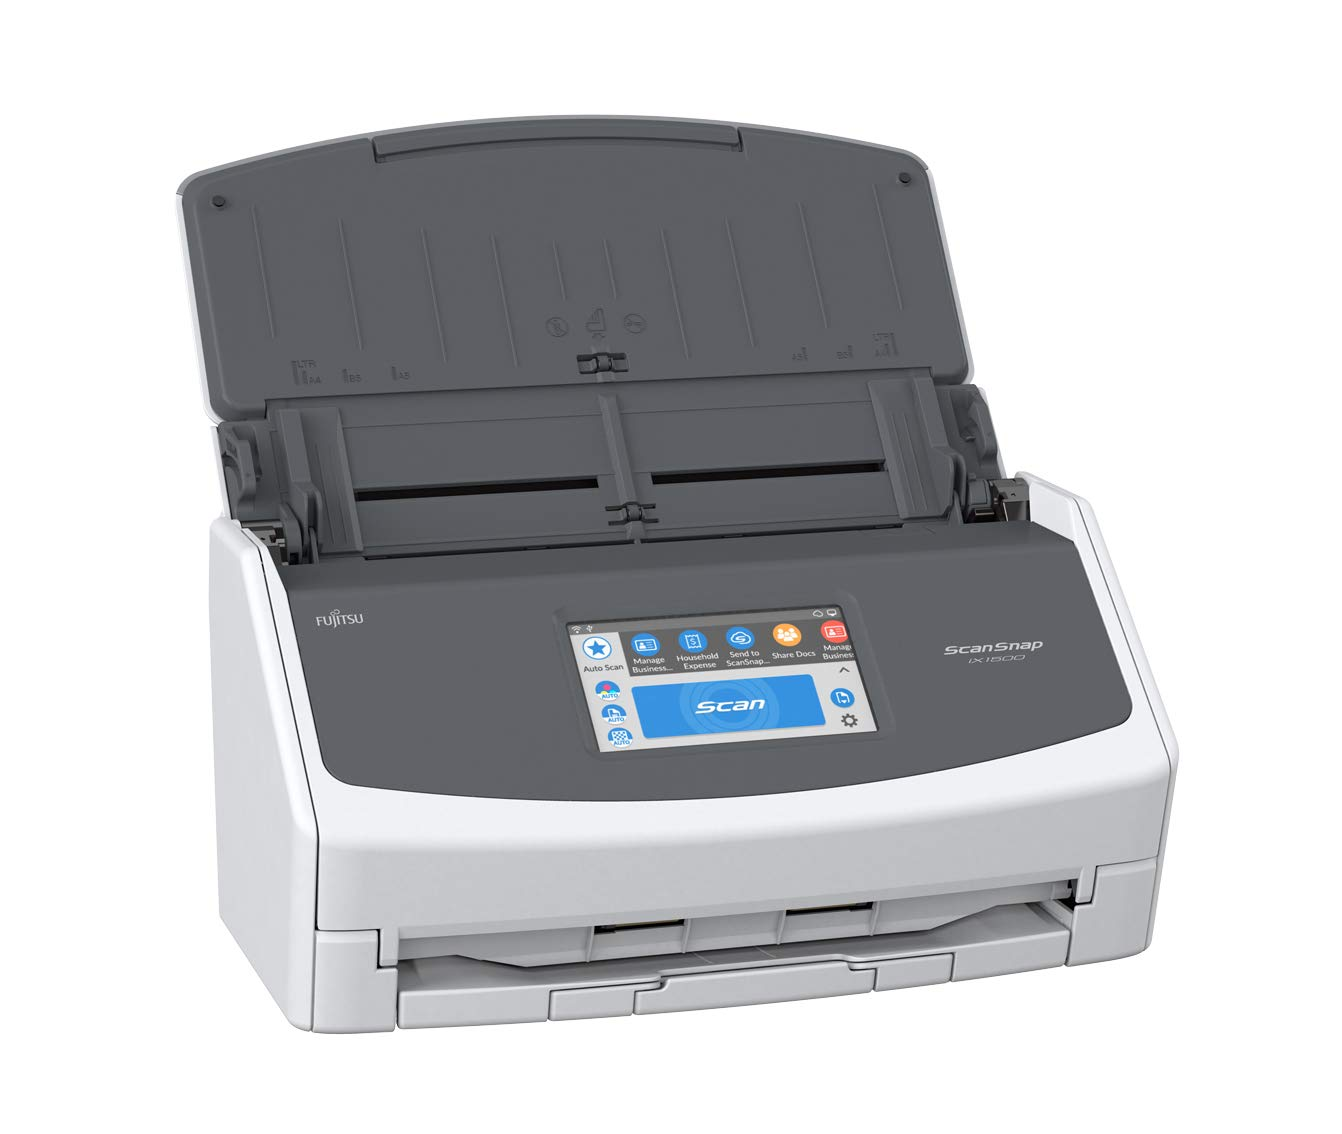 Fujitsu ScanSnap iX1500 Color Duplex Document Scanner with Touch Screen for Mac and PC [Current Model, 2018 Release] by Fujitsu (Image #1)